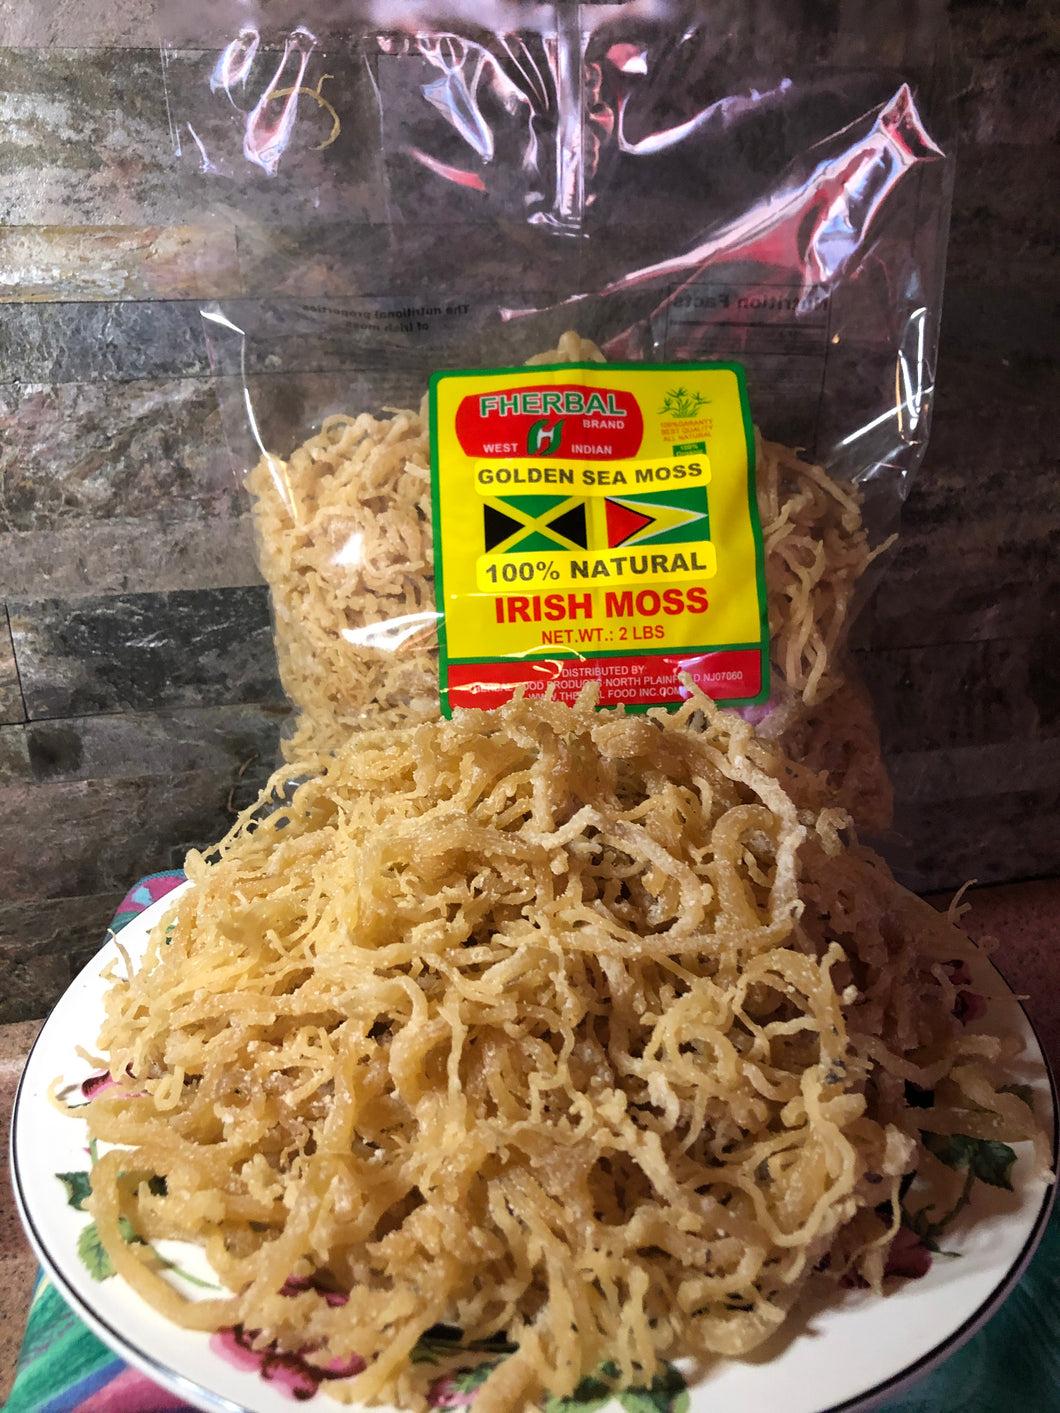 Therbal Brand Irish moss